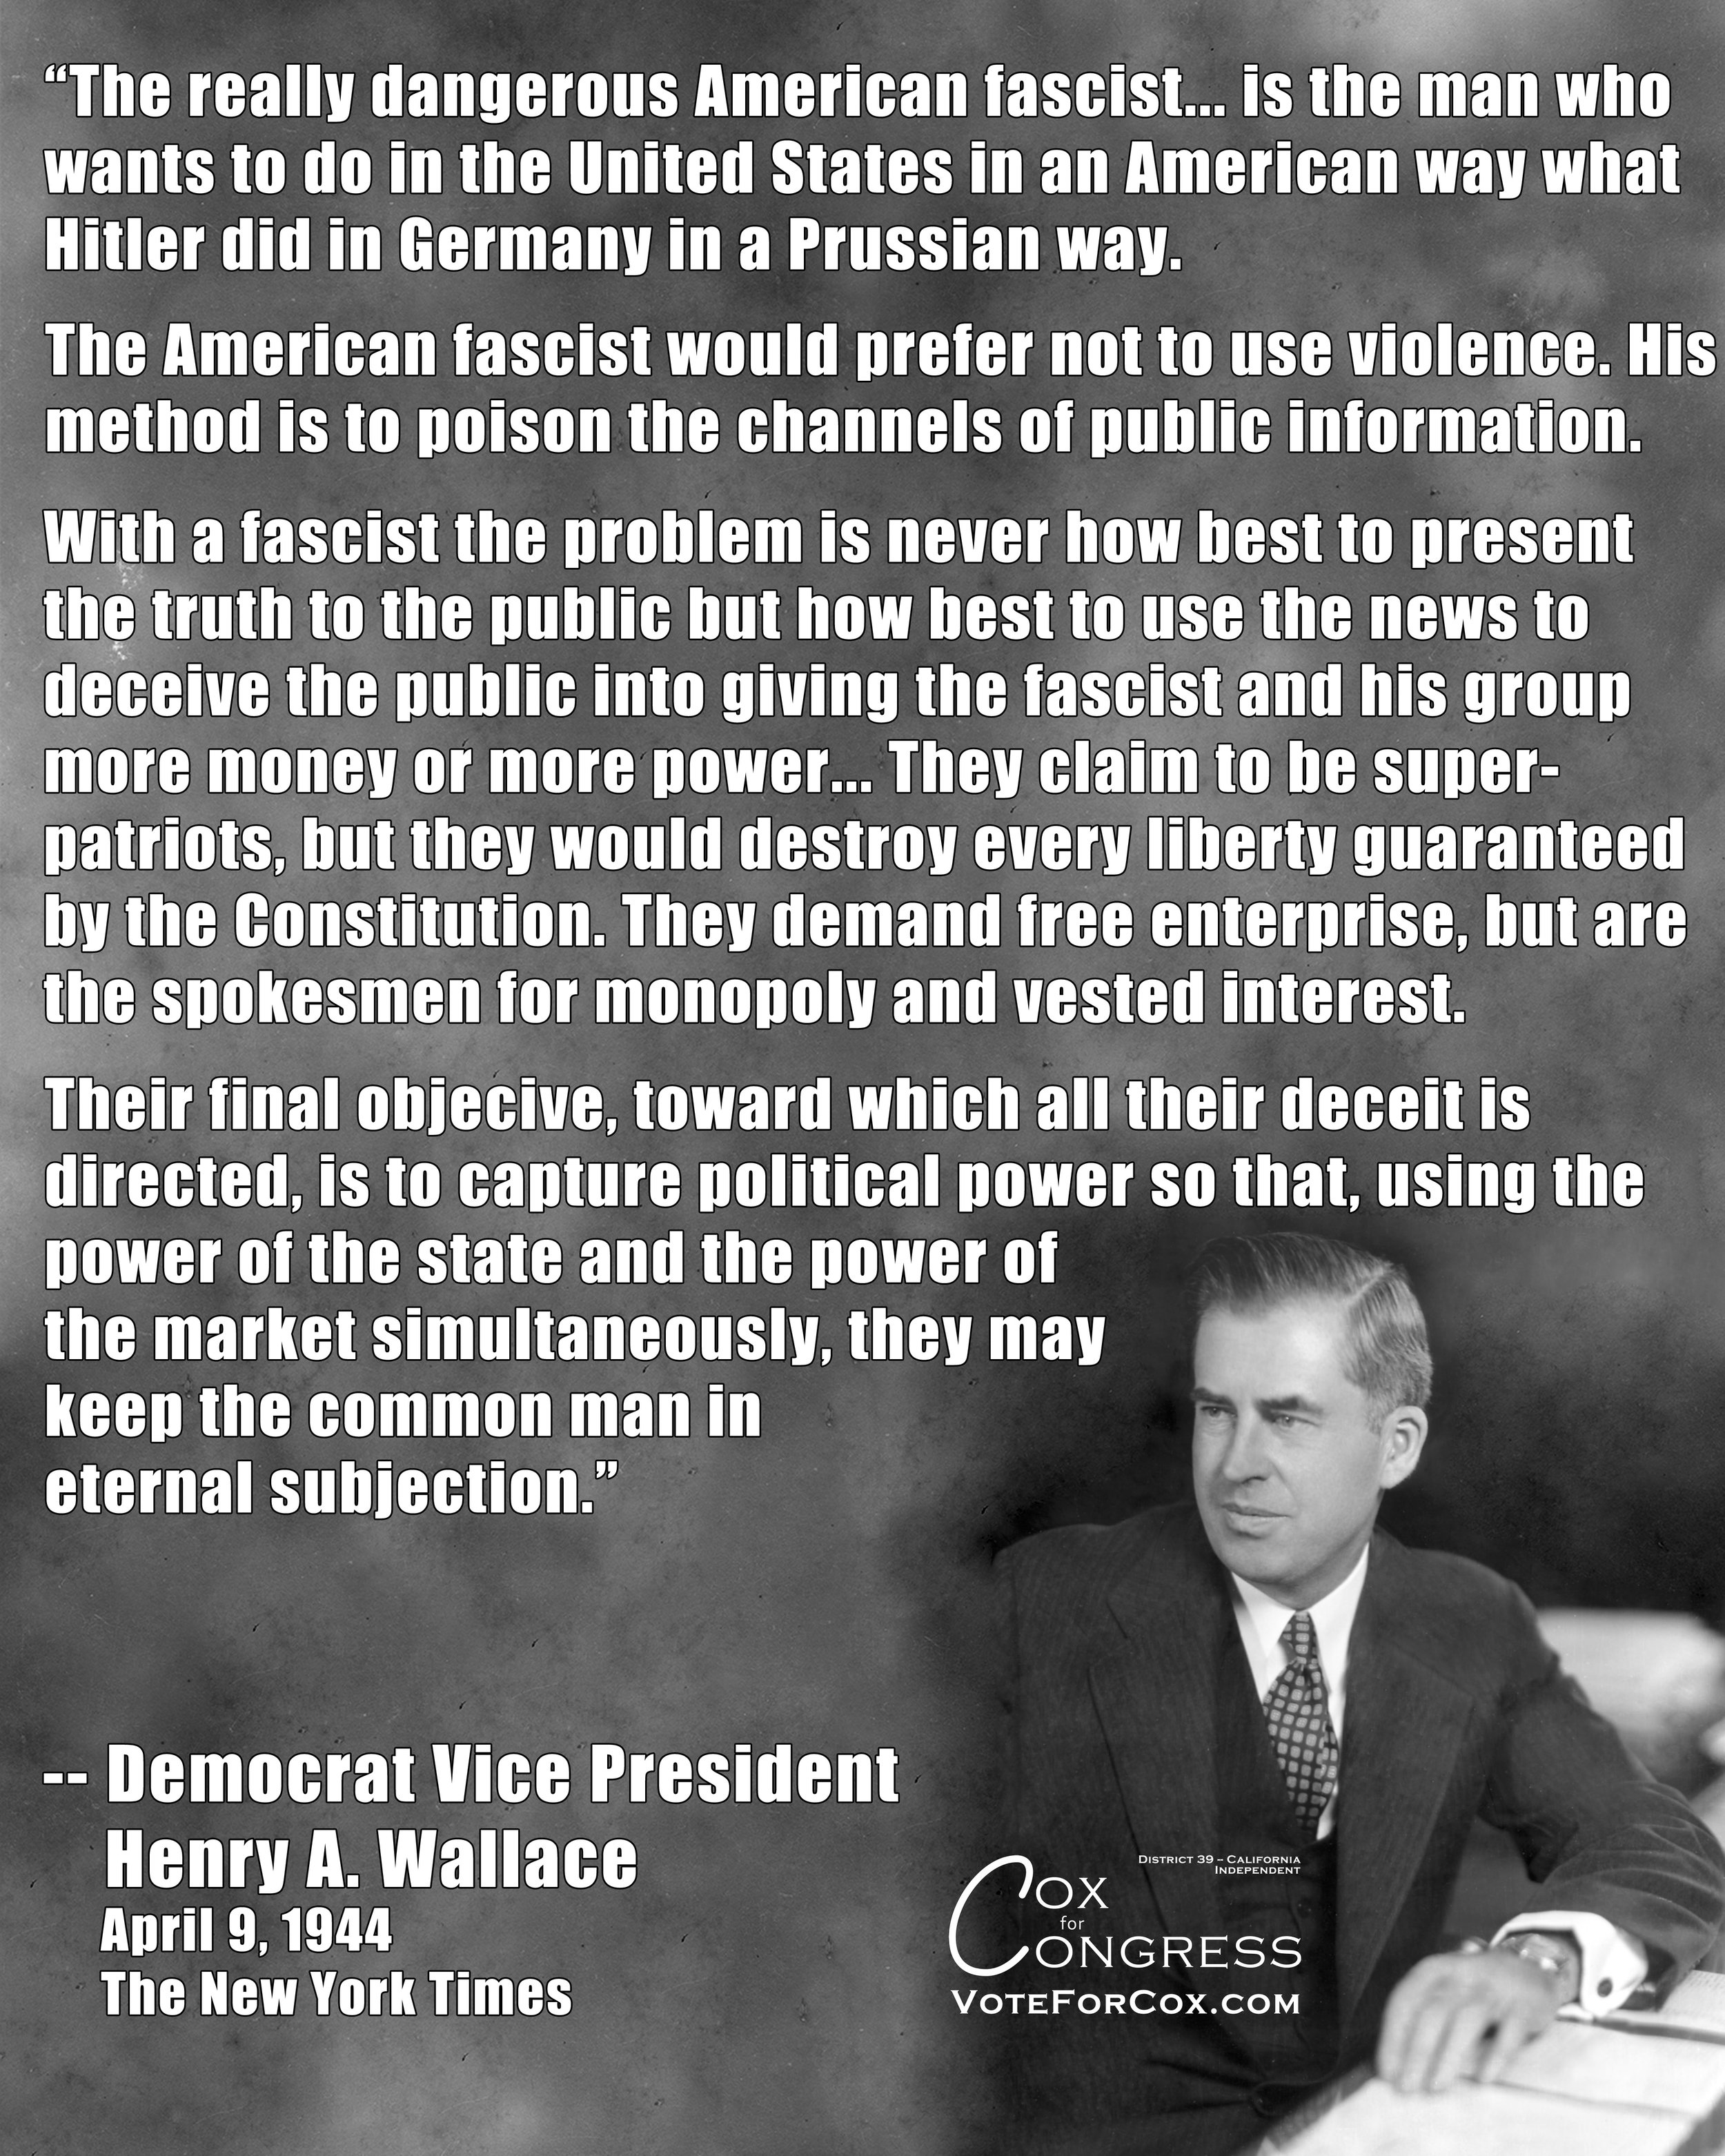 """Franklin D. Roosevelt's VP from 1941-1945 was, soon after this, removed from being FDR's running mate for re-election by the Democratic Party at the Democratic Convention in July of 1944, because he was """"too progressive"""" and """"too friendly with labor"""" to be next in line to the presidency as FDR's health continued to decline. He was replaced by Harry Truman, who was deemed more conservative and more friendly to business interests."""